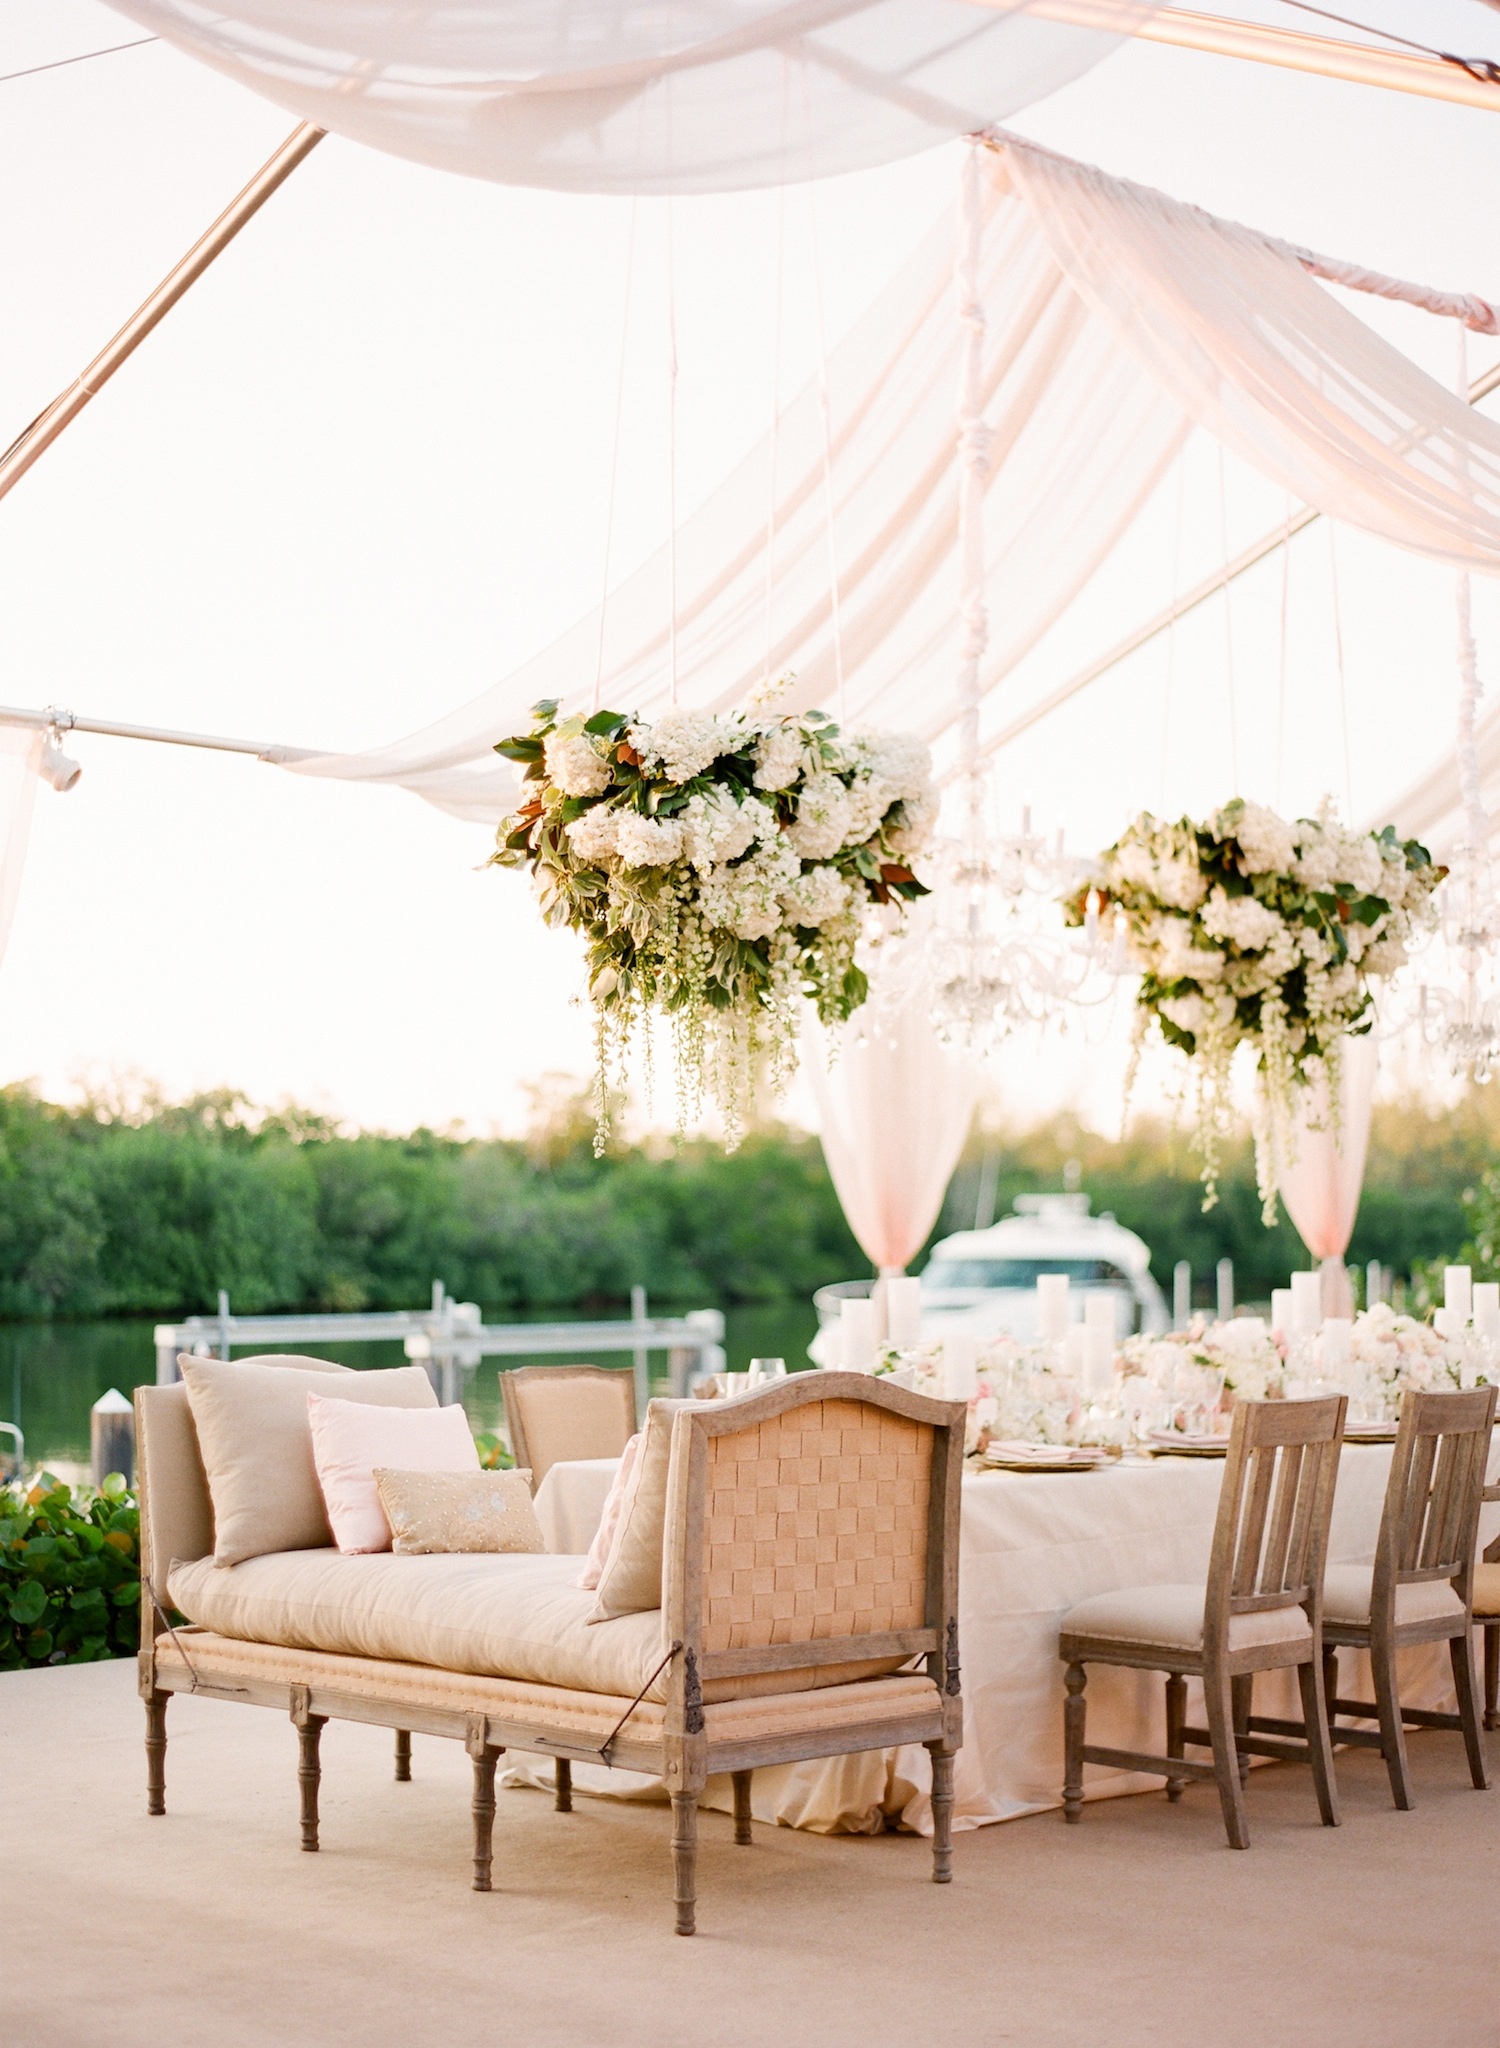 Pink tent wedding with tan settee and chairs & Wedding Ideas: Pretty u0026 Unique Reception Seating - Inside Weddings